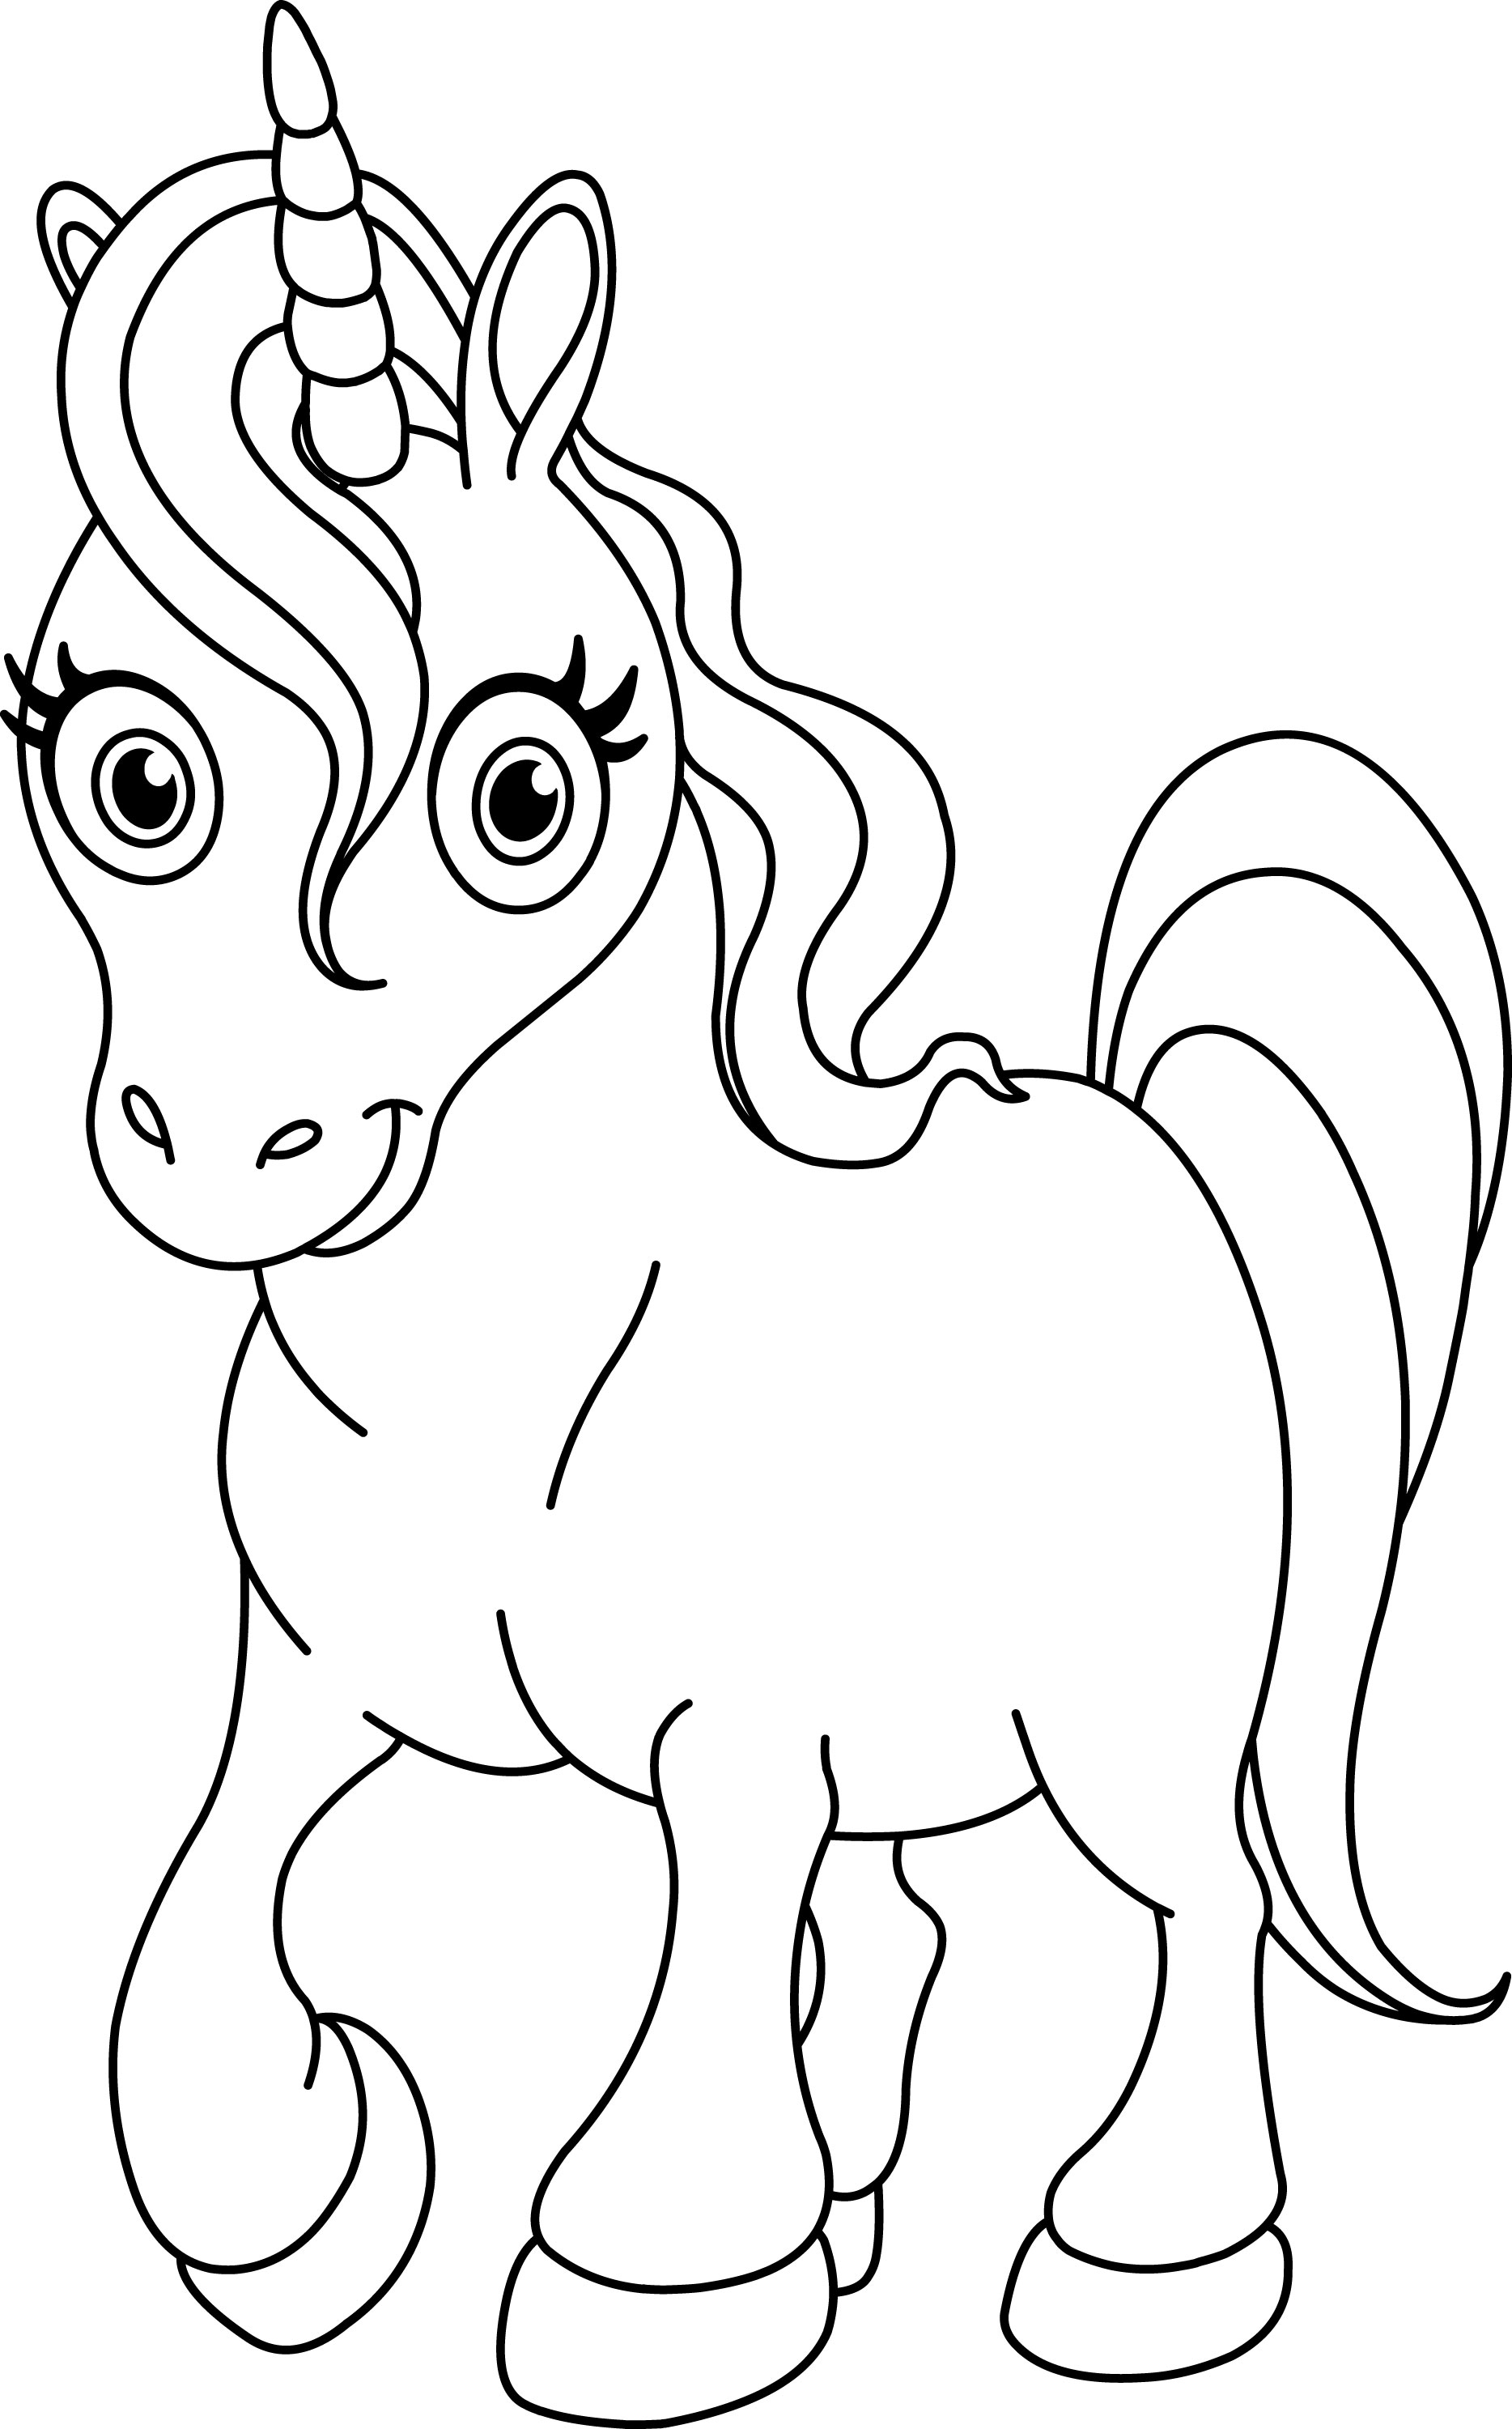 unicorn coloring videos unicorn coloring pages to download and print for free unicorn videos coloring